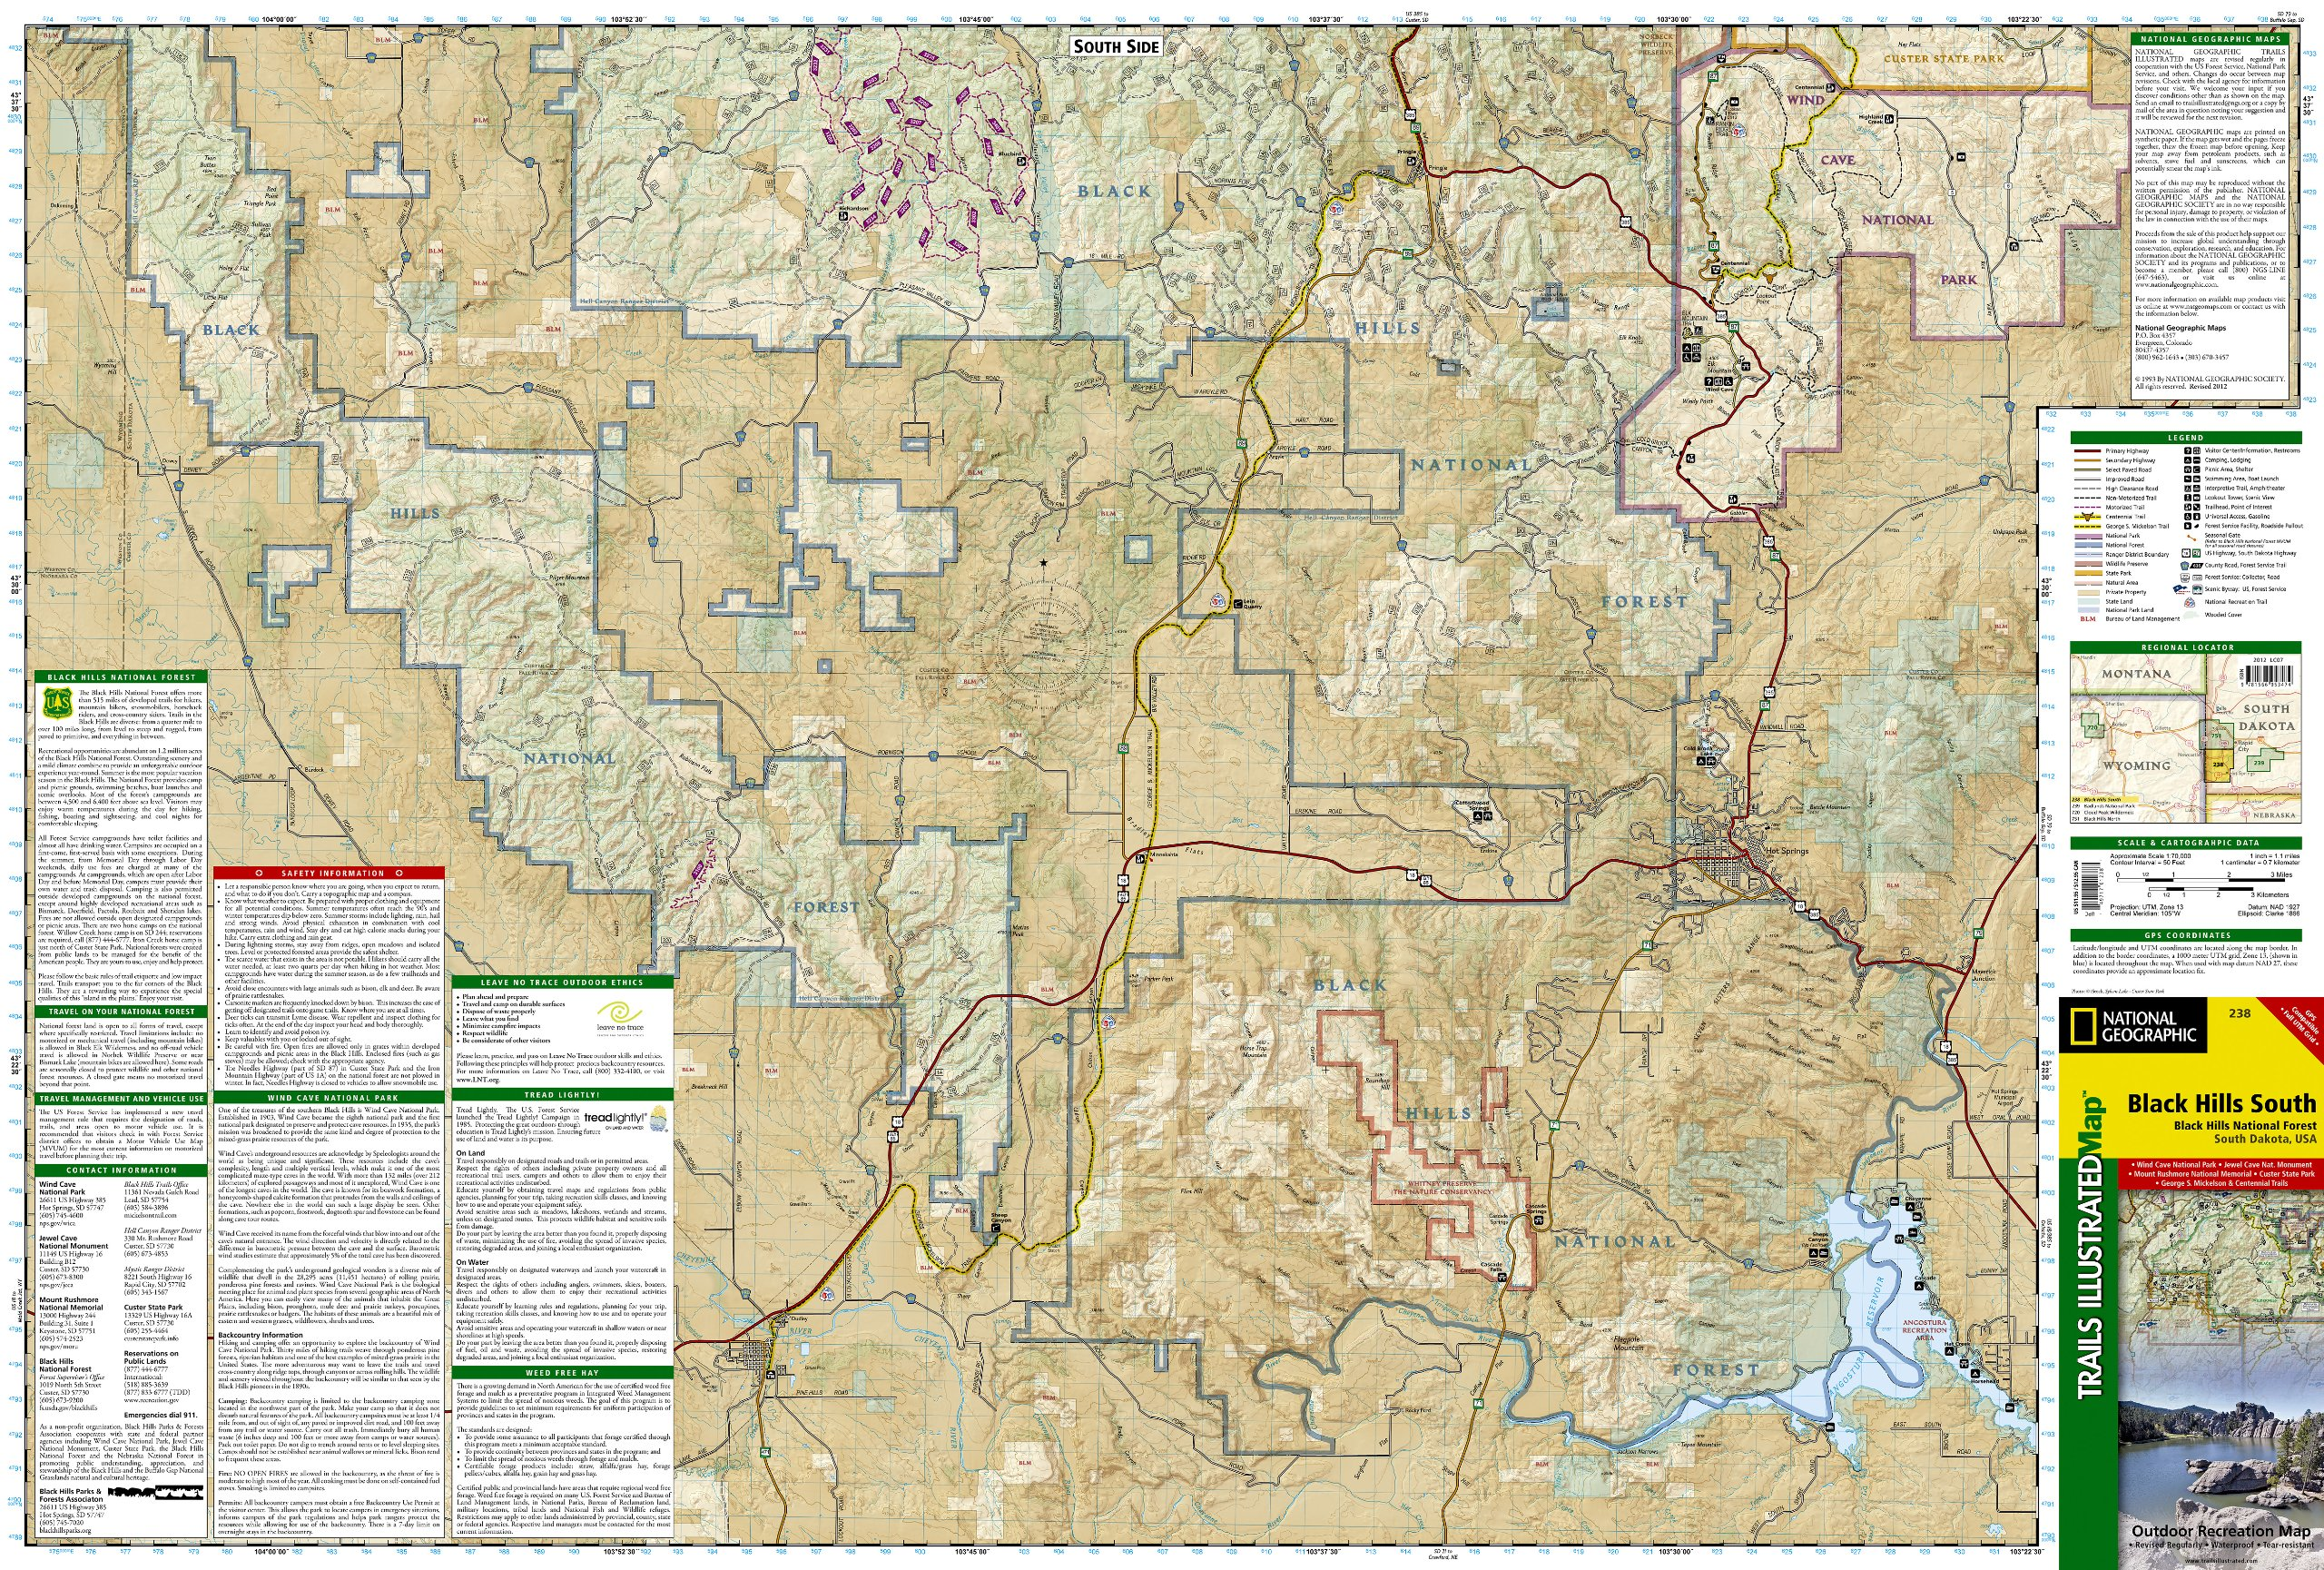 Black Hills South [Black Hills National Forest] (National Geographic ...